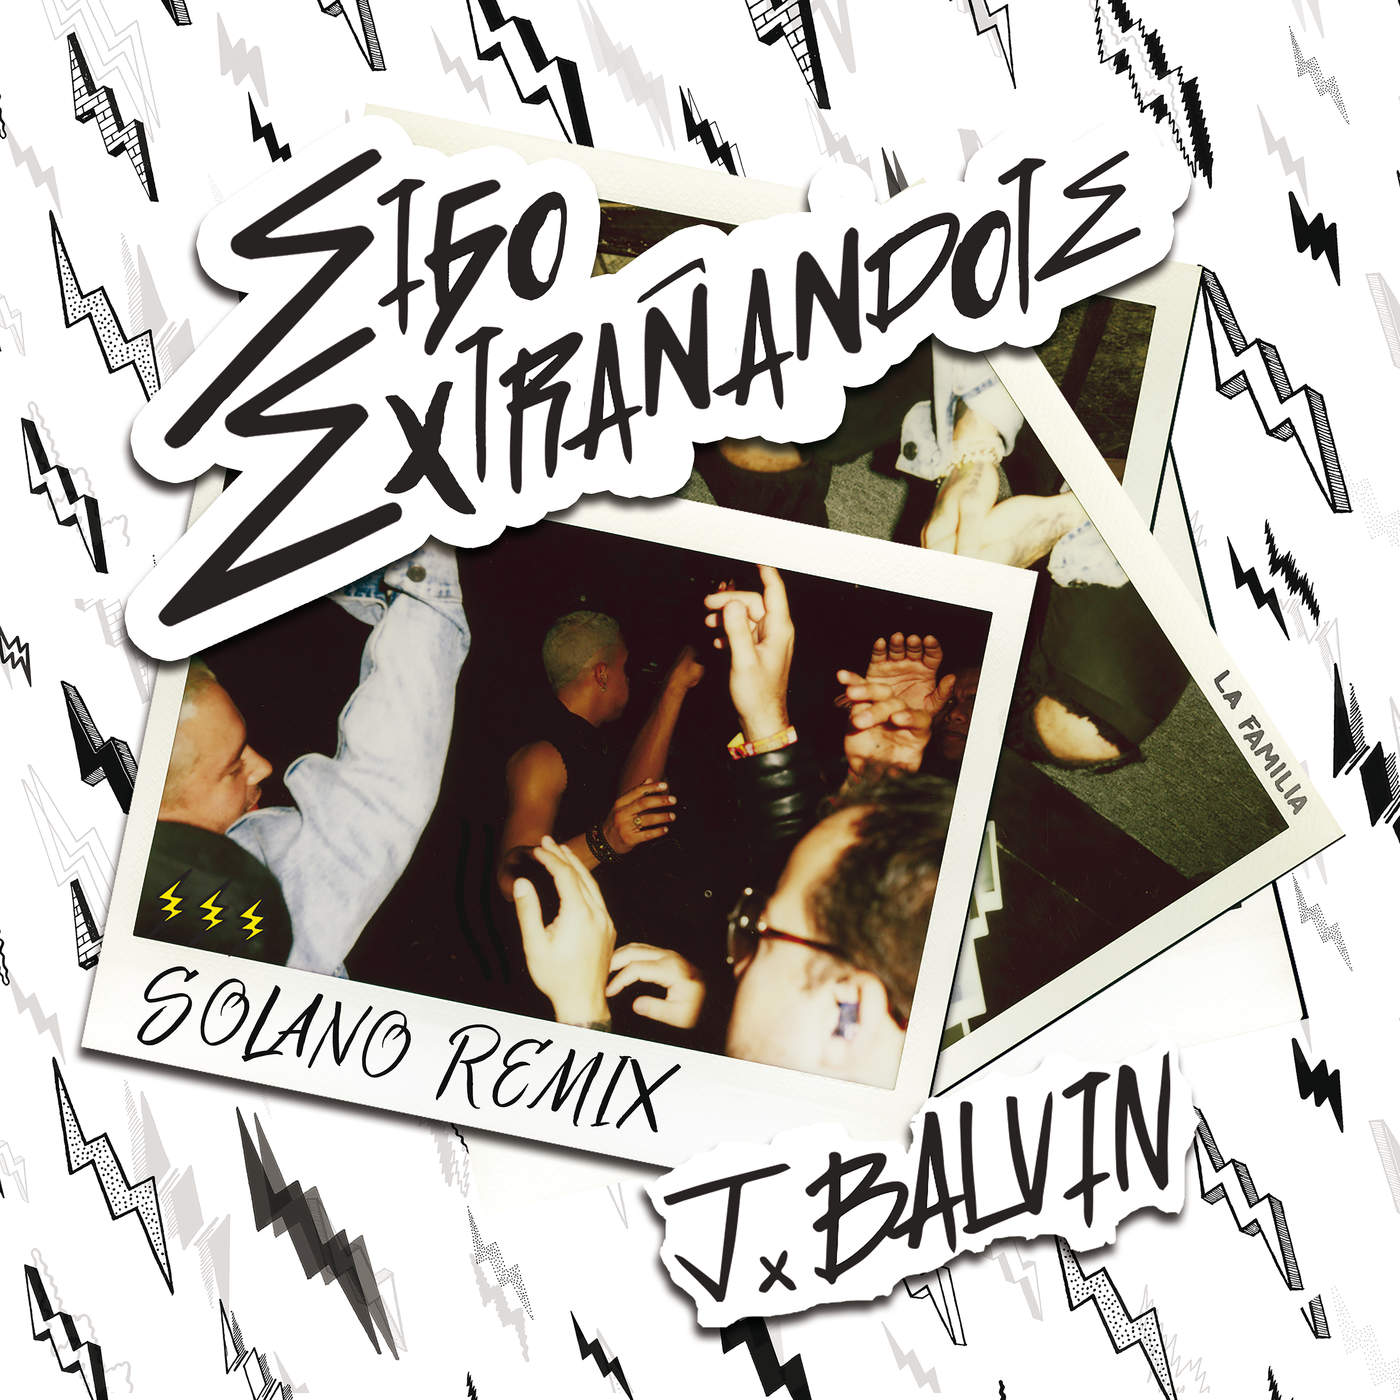 J Balvin - Sigo Extrañándote (Remix) - Single Cover